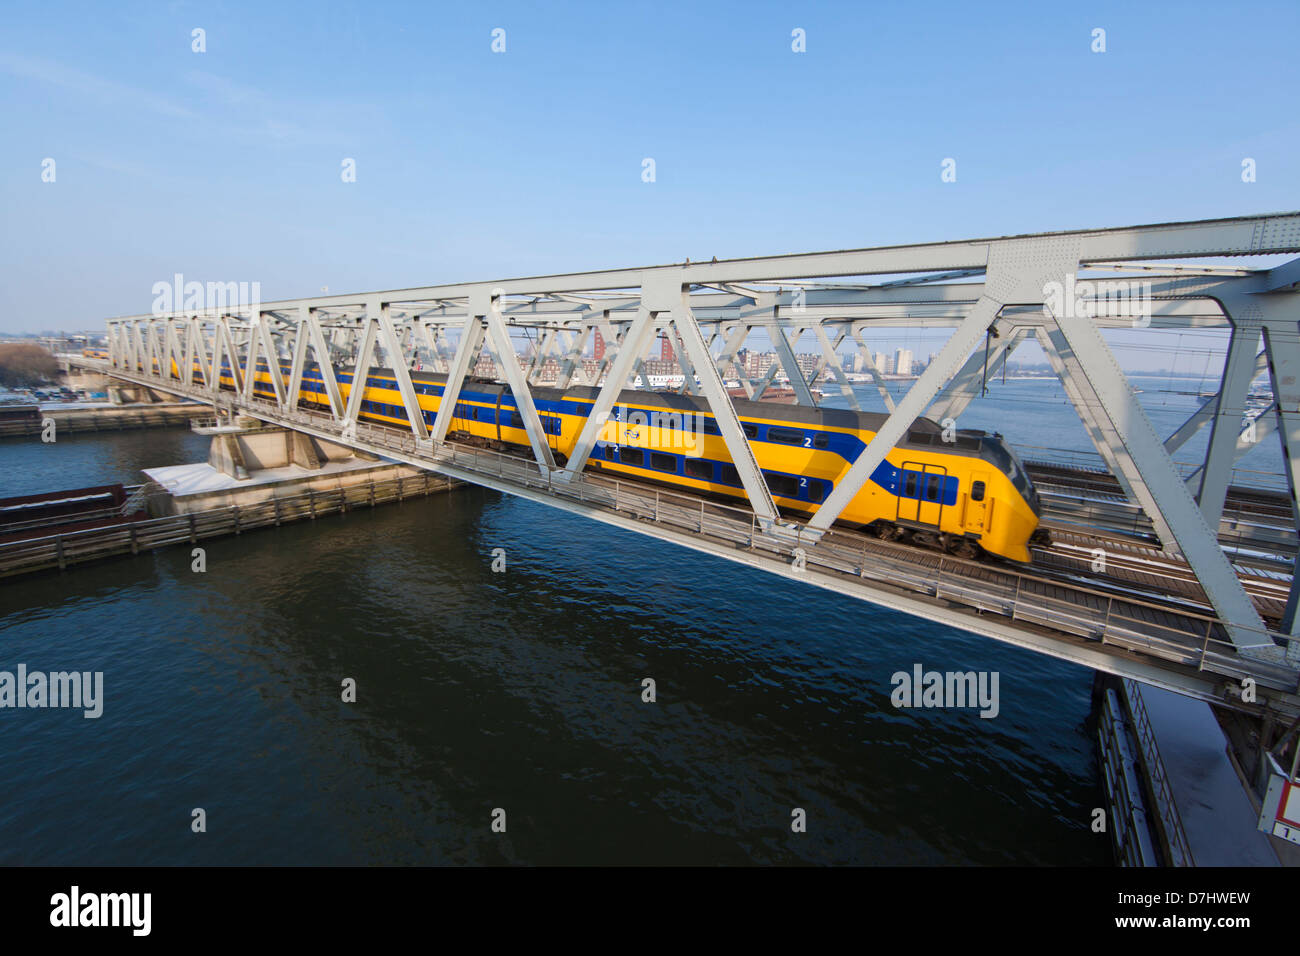 (train) Bridge over the river 'Maas' in dordrecht. - Stock Image